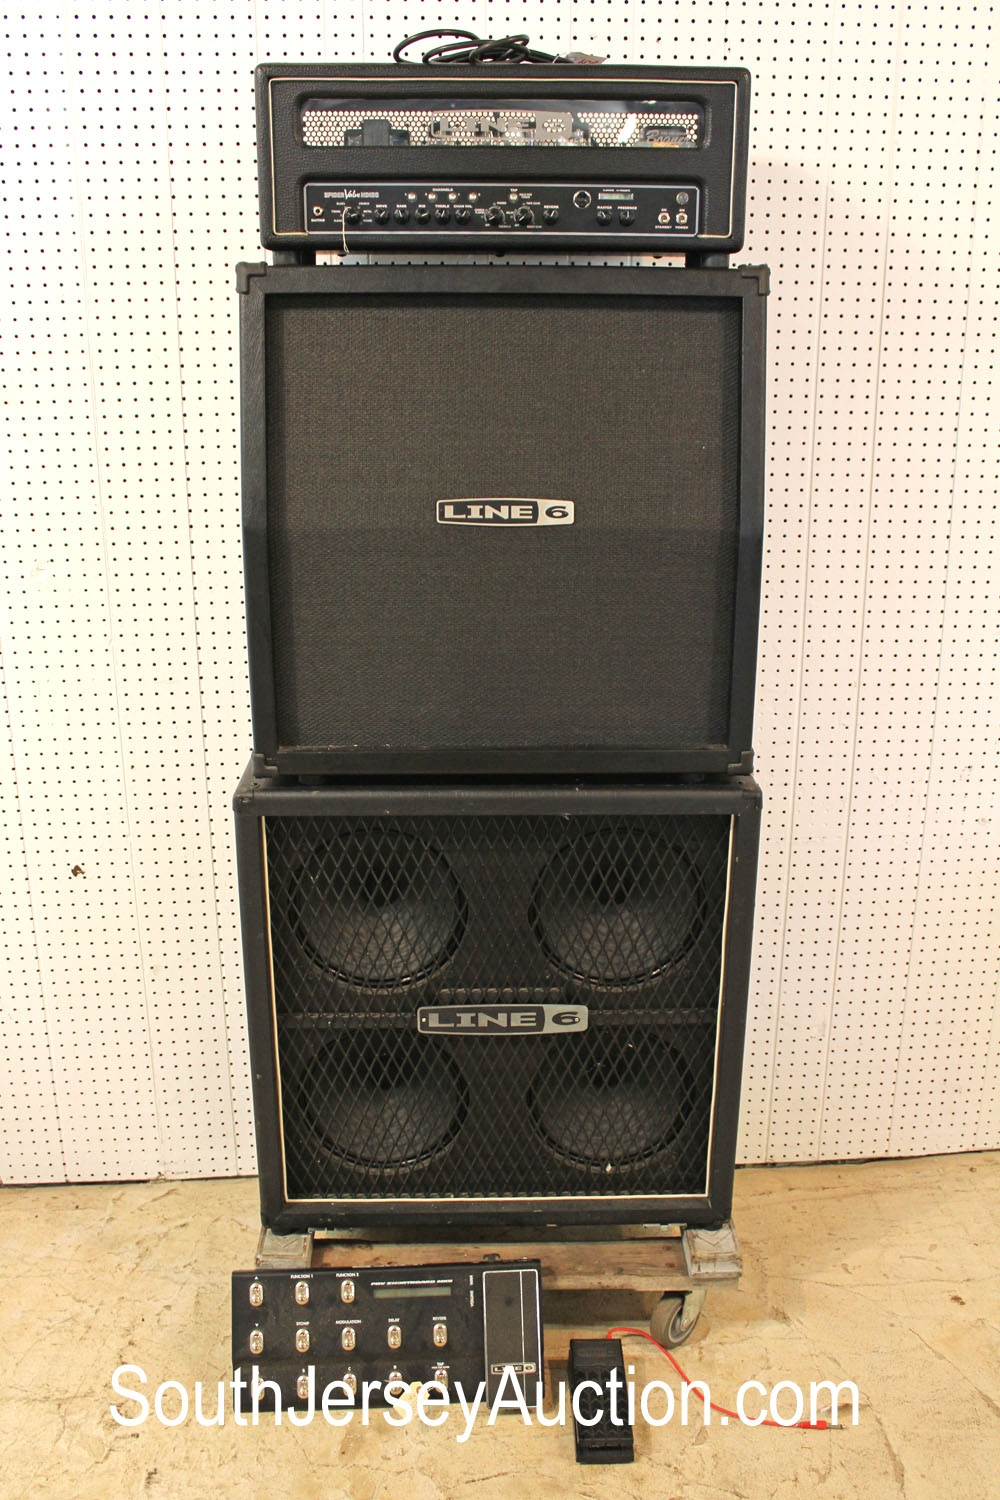 Line 6  4x12 Cabinet on Tour Megadeth Armageddon Bogner Line 6 Tube with a Line 6 bottom Cabinet signed on top by Dave Mustaine from Megadeth, on stage in 2012 on the Armageddon (sp) tour no PSDNA , working condition with volume pedal and effects pedal (amp and 2 speakers, full stack for a 5 piece lot)